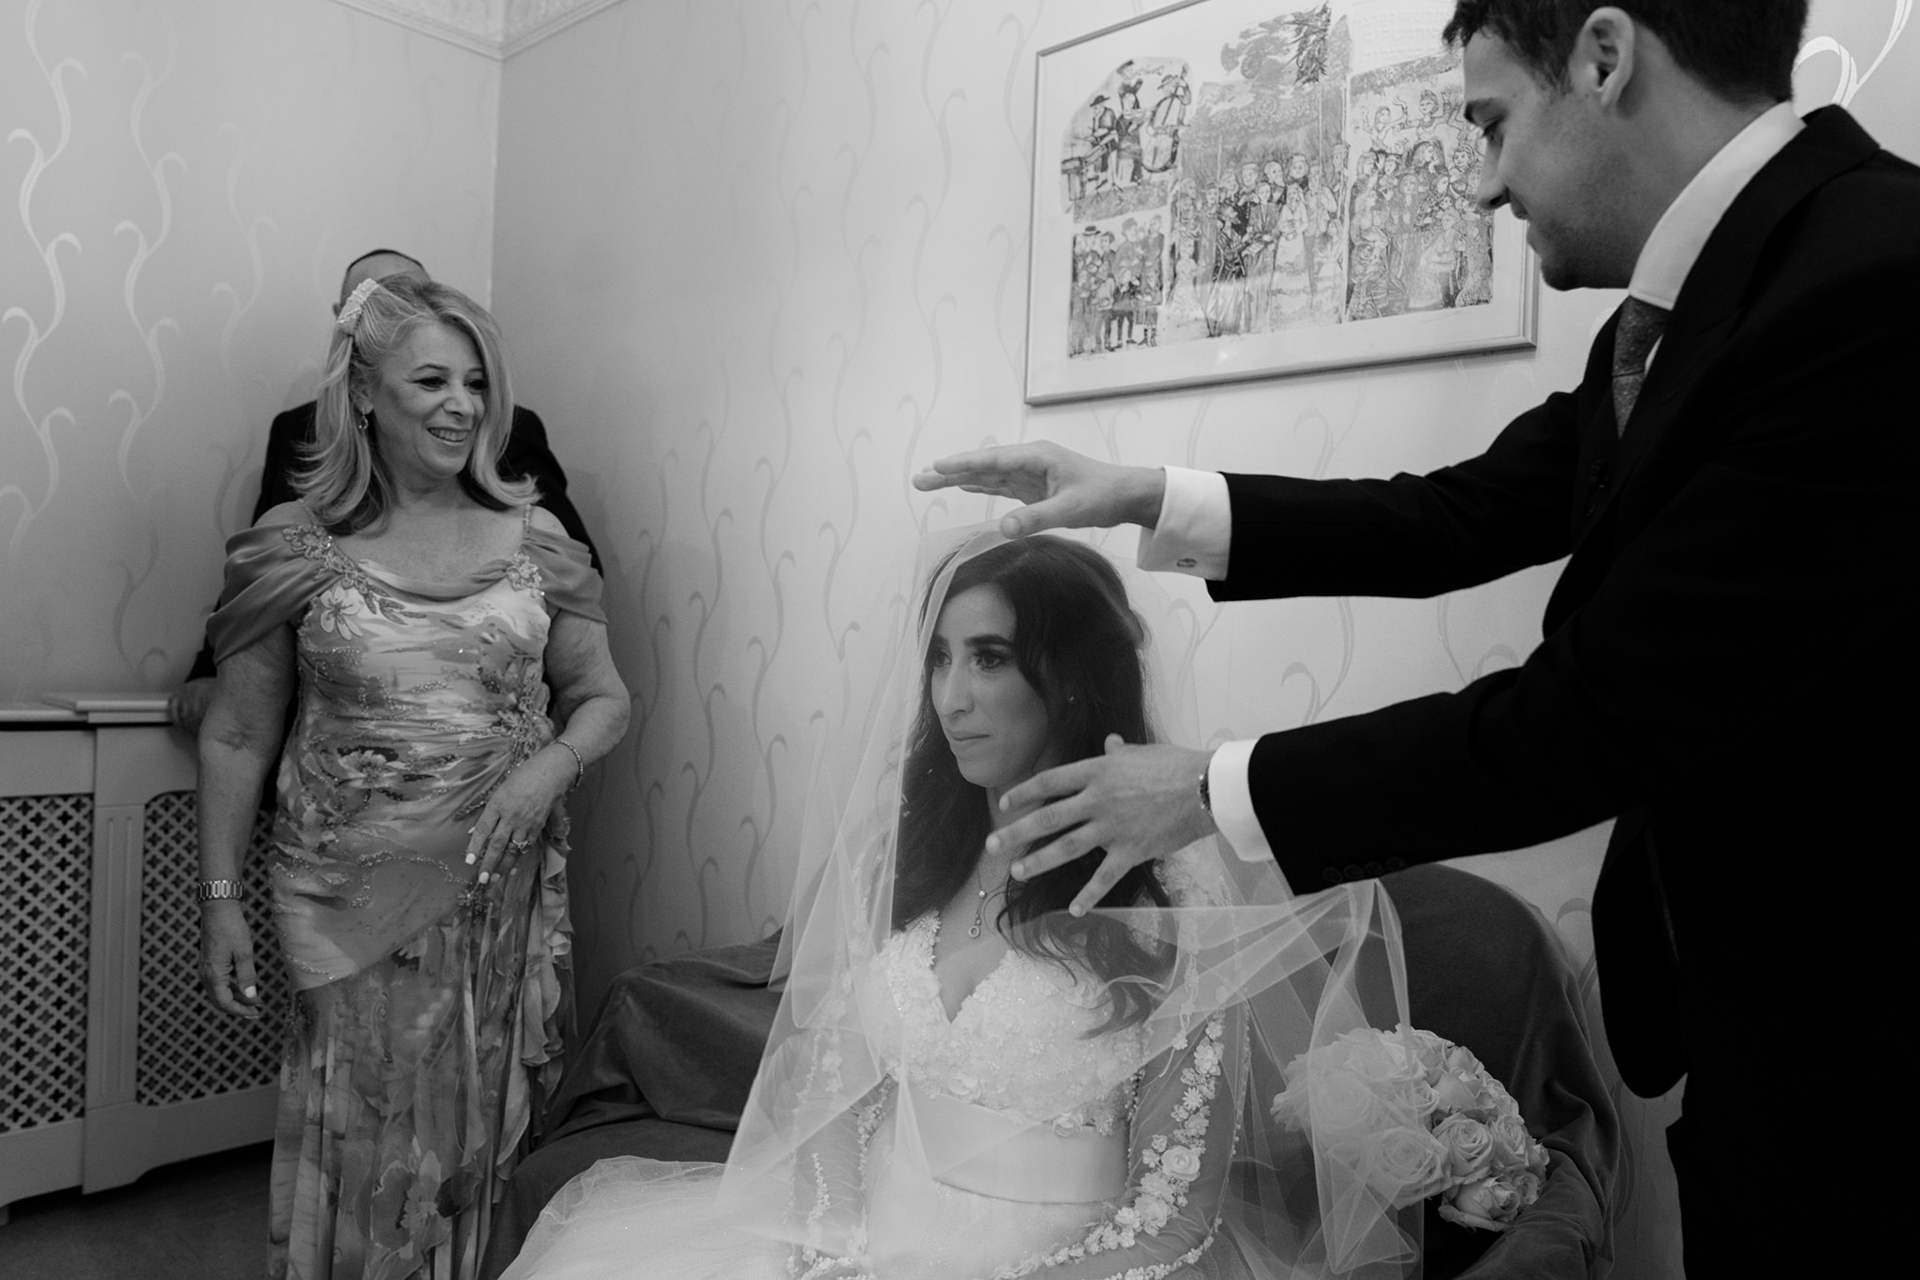 Wedding Photography at the Central Synagogue | The groom veils the bride during the Bedekken ceremony